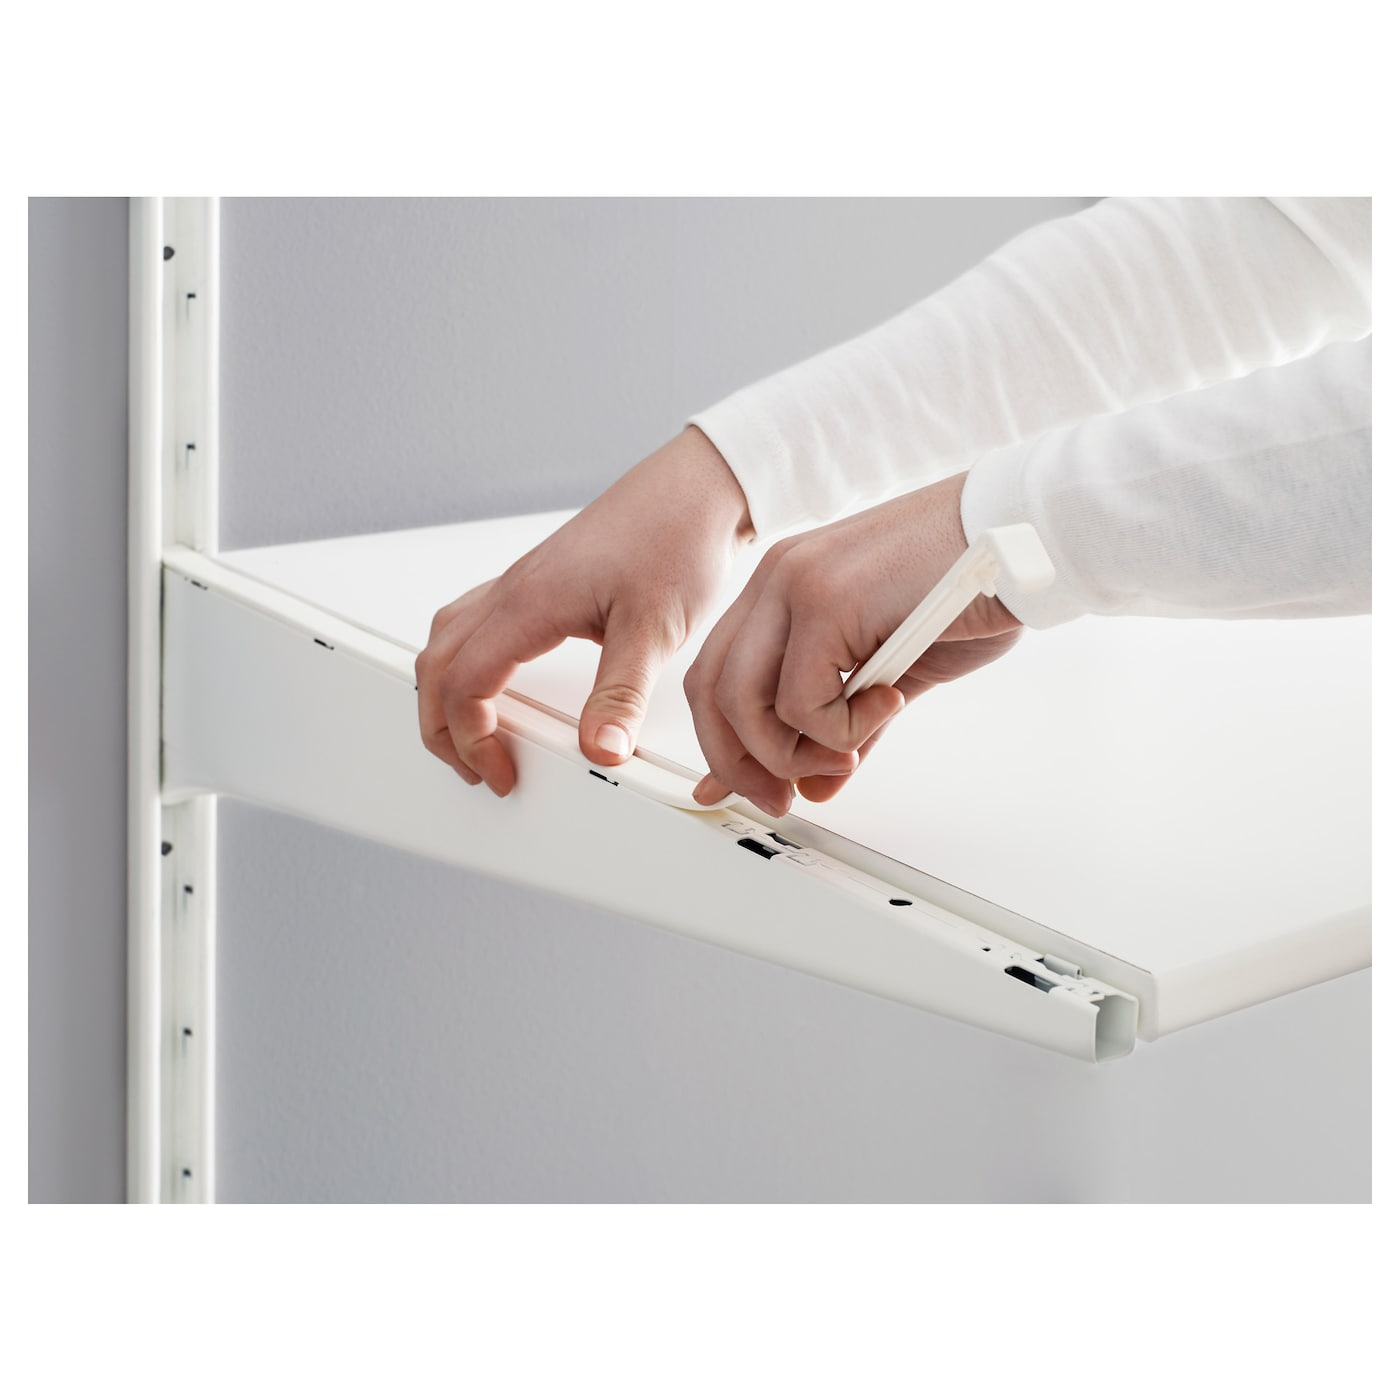 IKEA ALGOT bracket Can also be used in bathrooms and other damp areas indoors.